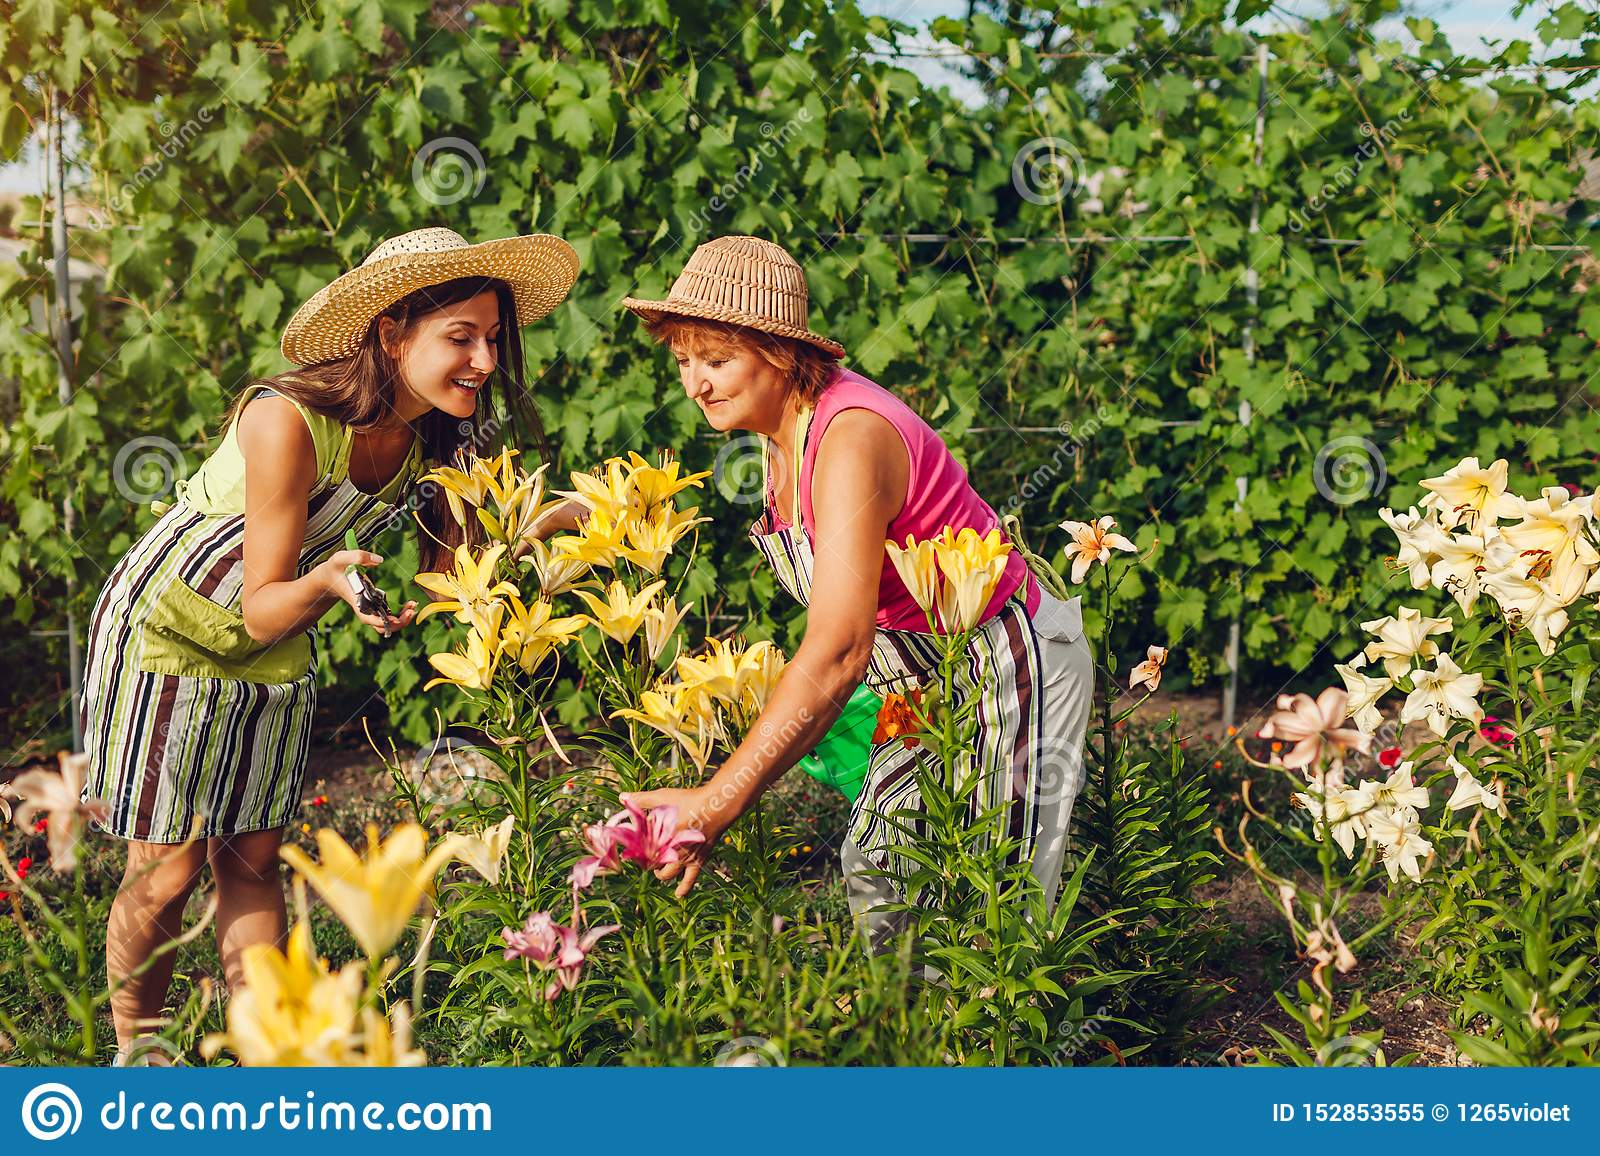 Senior woman and her daughter gathering flowers in garden. Gardeners cutting lilies off with pruner. Gardening concept